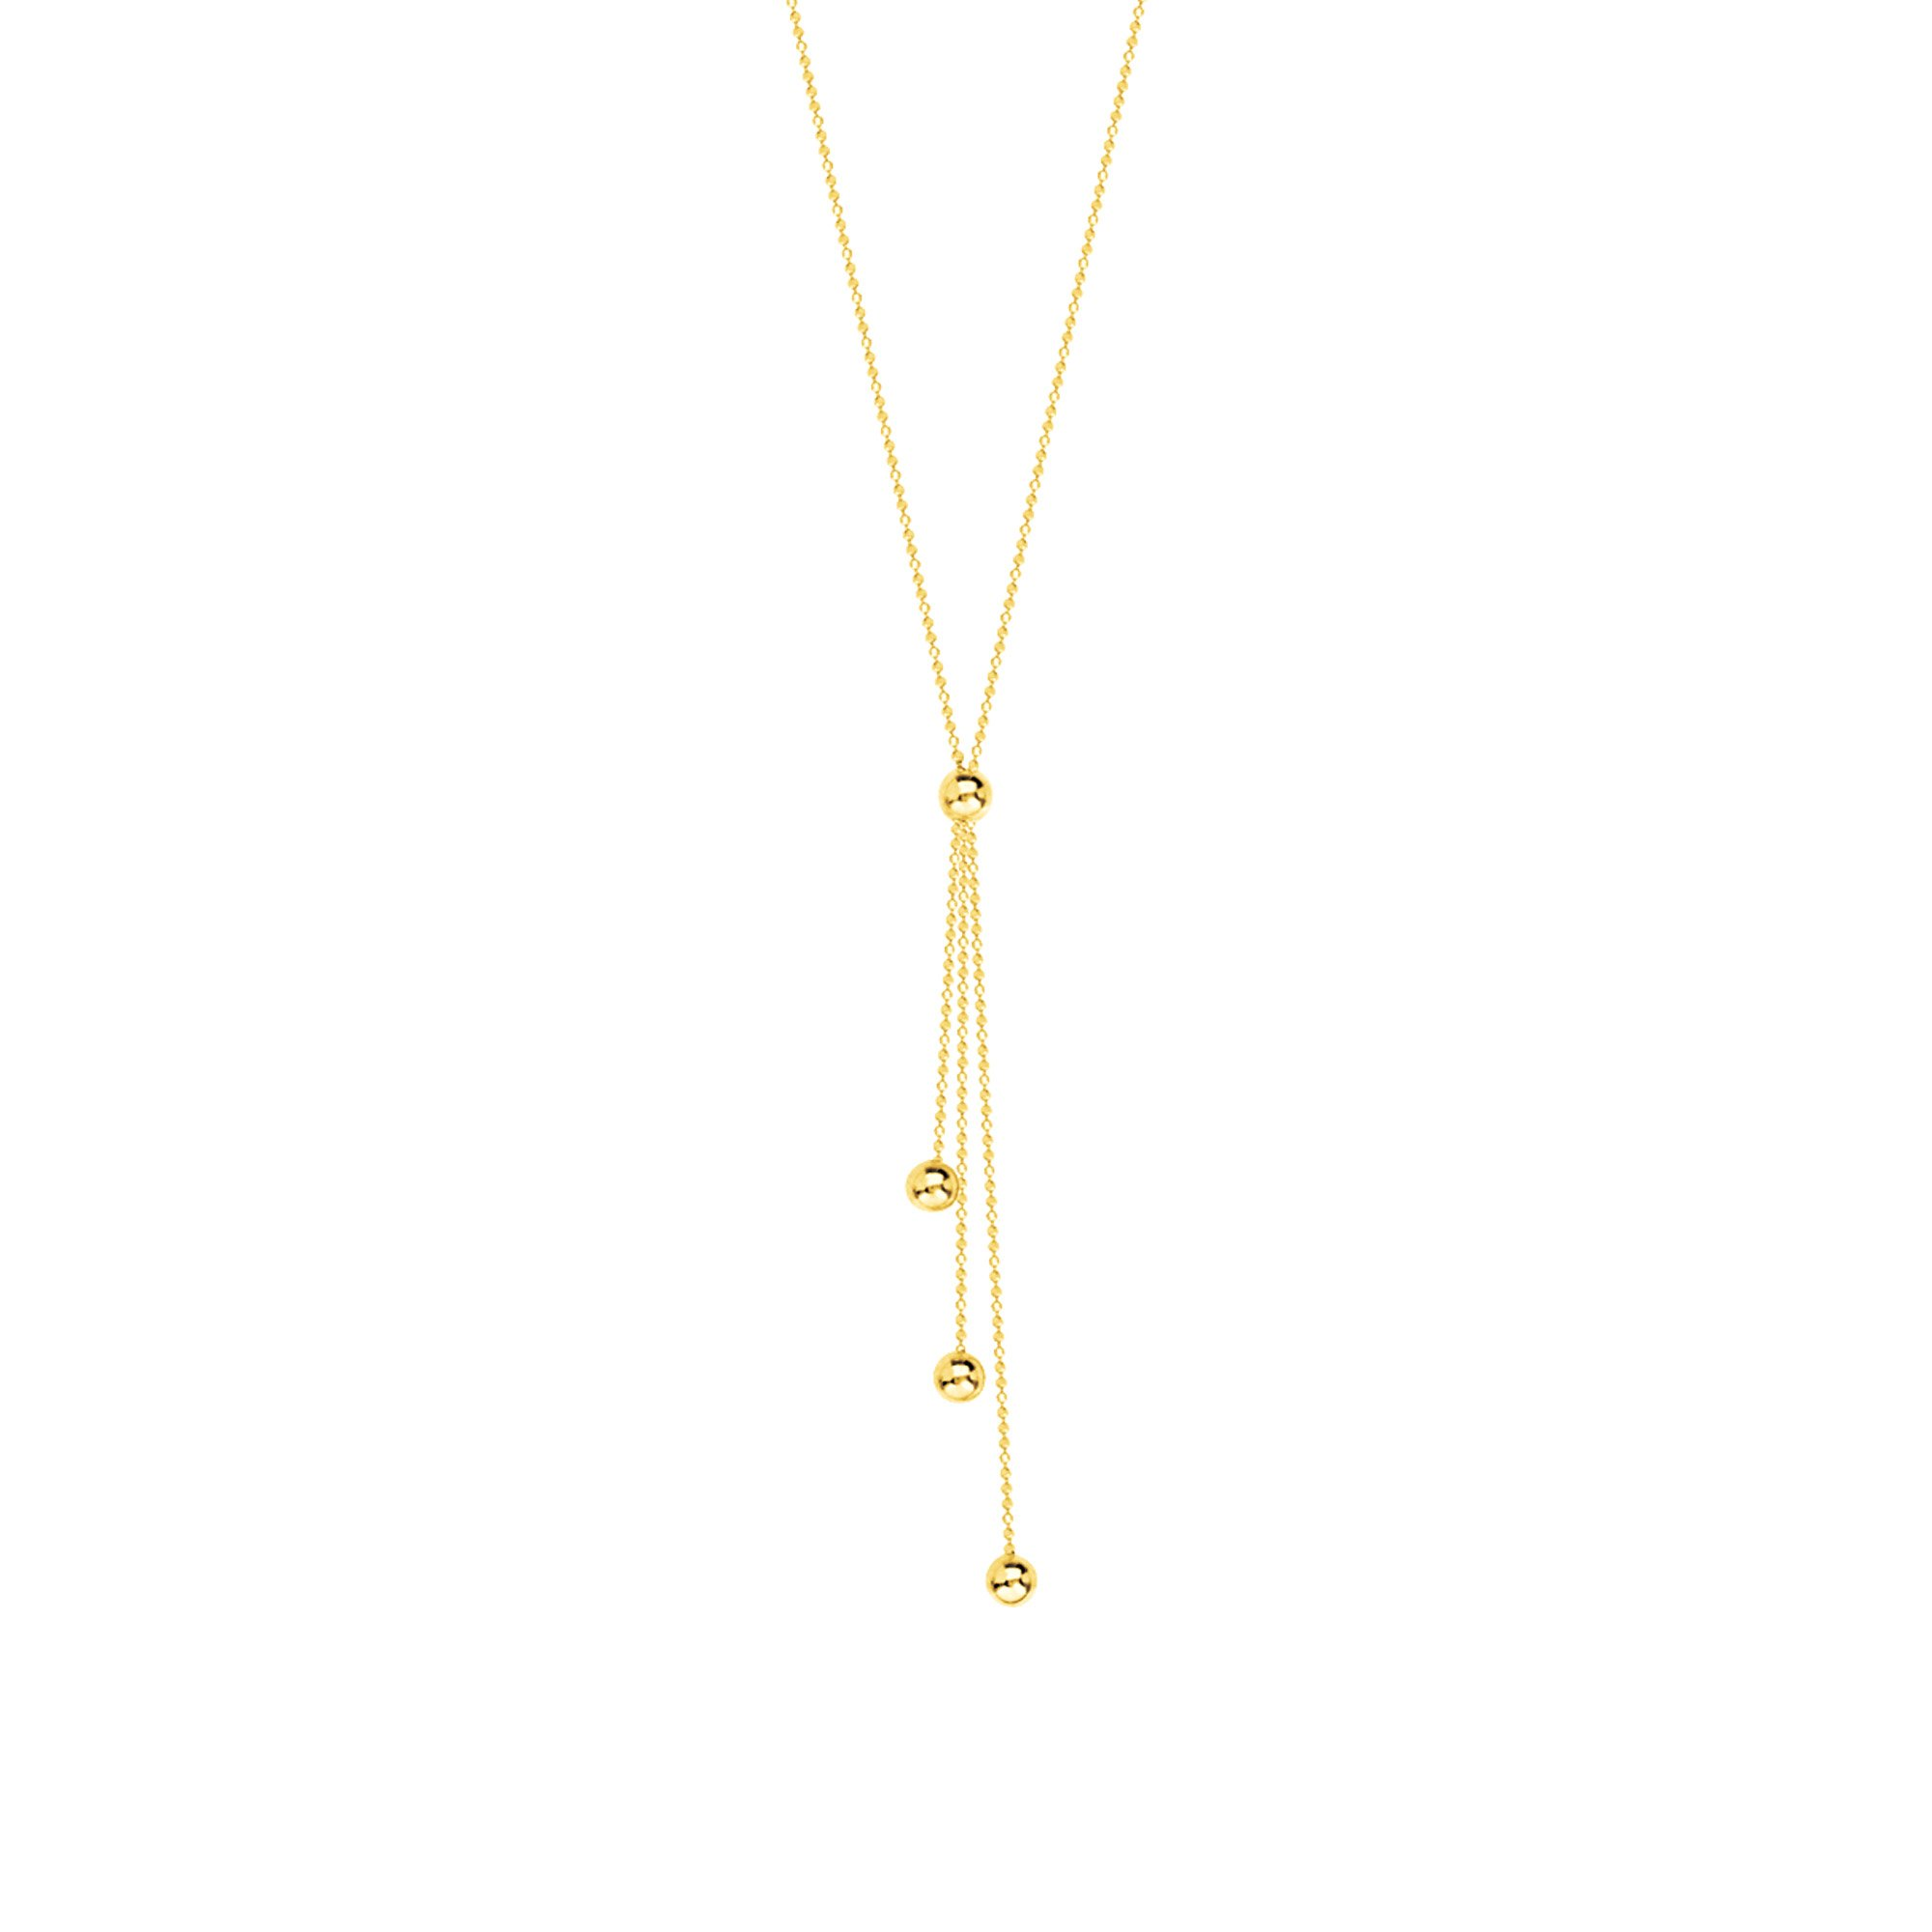 GOLD NECKLACE, 14KT GOLD 3 STRAND ''Y'' DROP NECKLACE